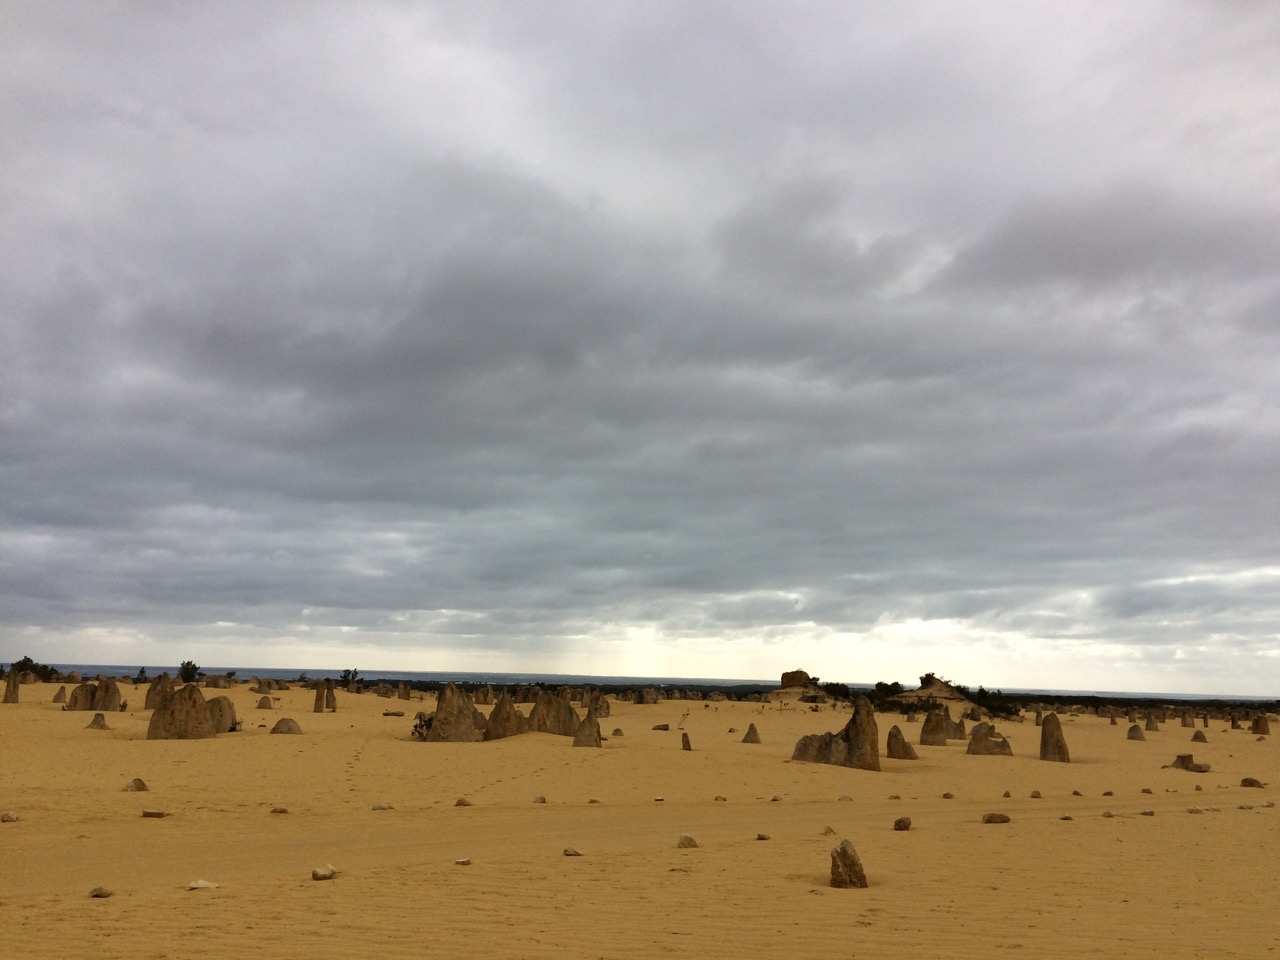 The Pinnacles desert on a stormy day